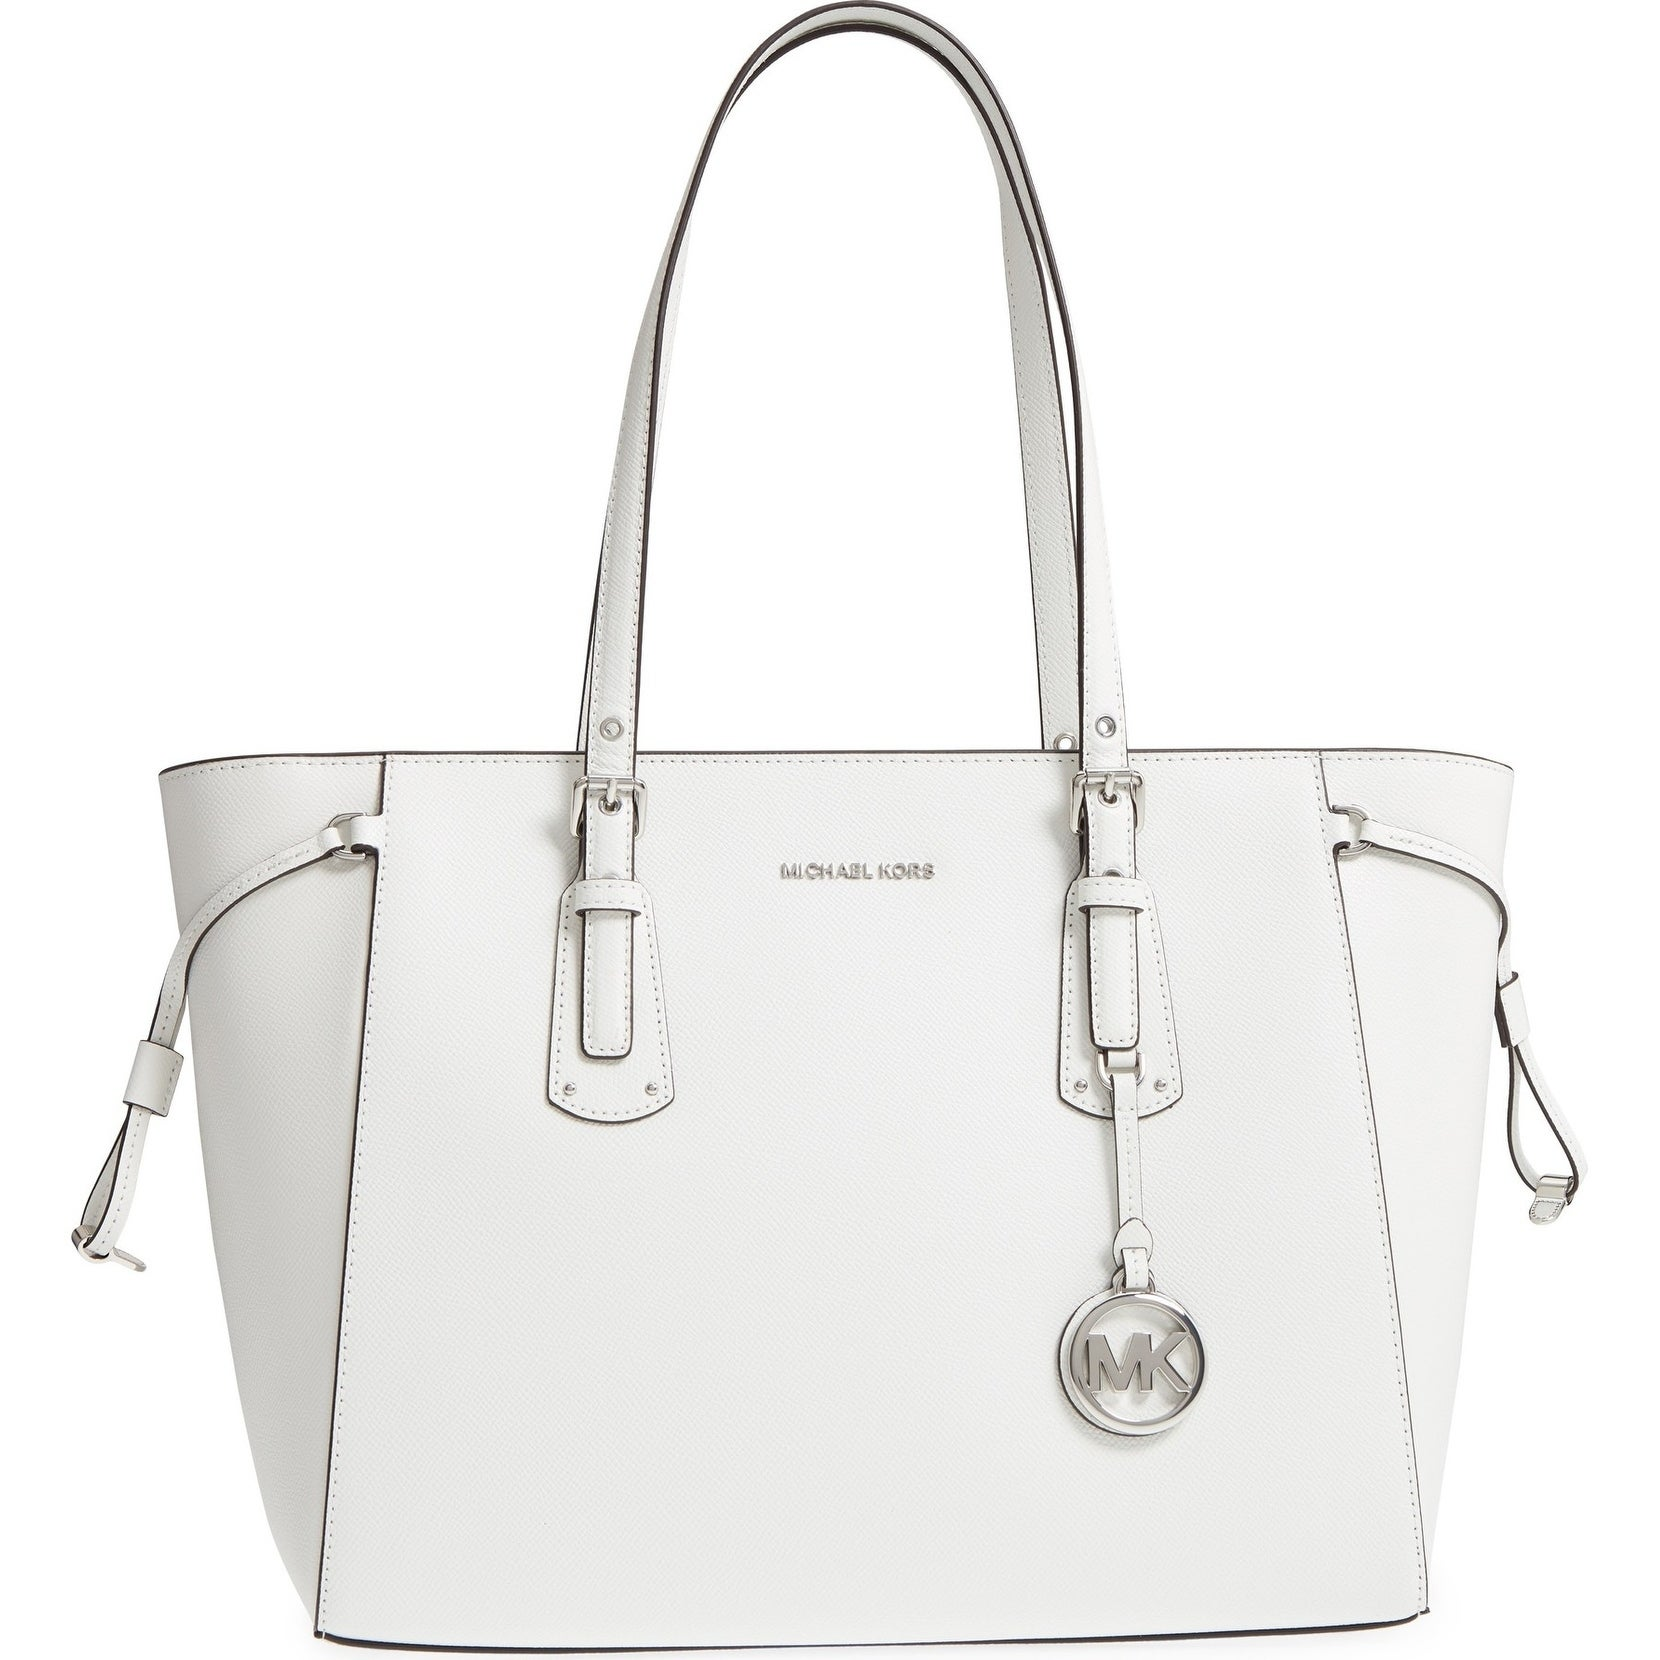 cbfc35715bb6 Shop MICHAEL Michael Kors Voyager Medium Top Zip Optic White Tote Bag -  Free Shipping Today - Overstock - 22084987